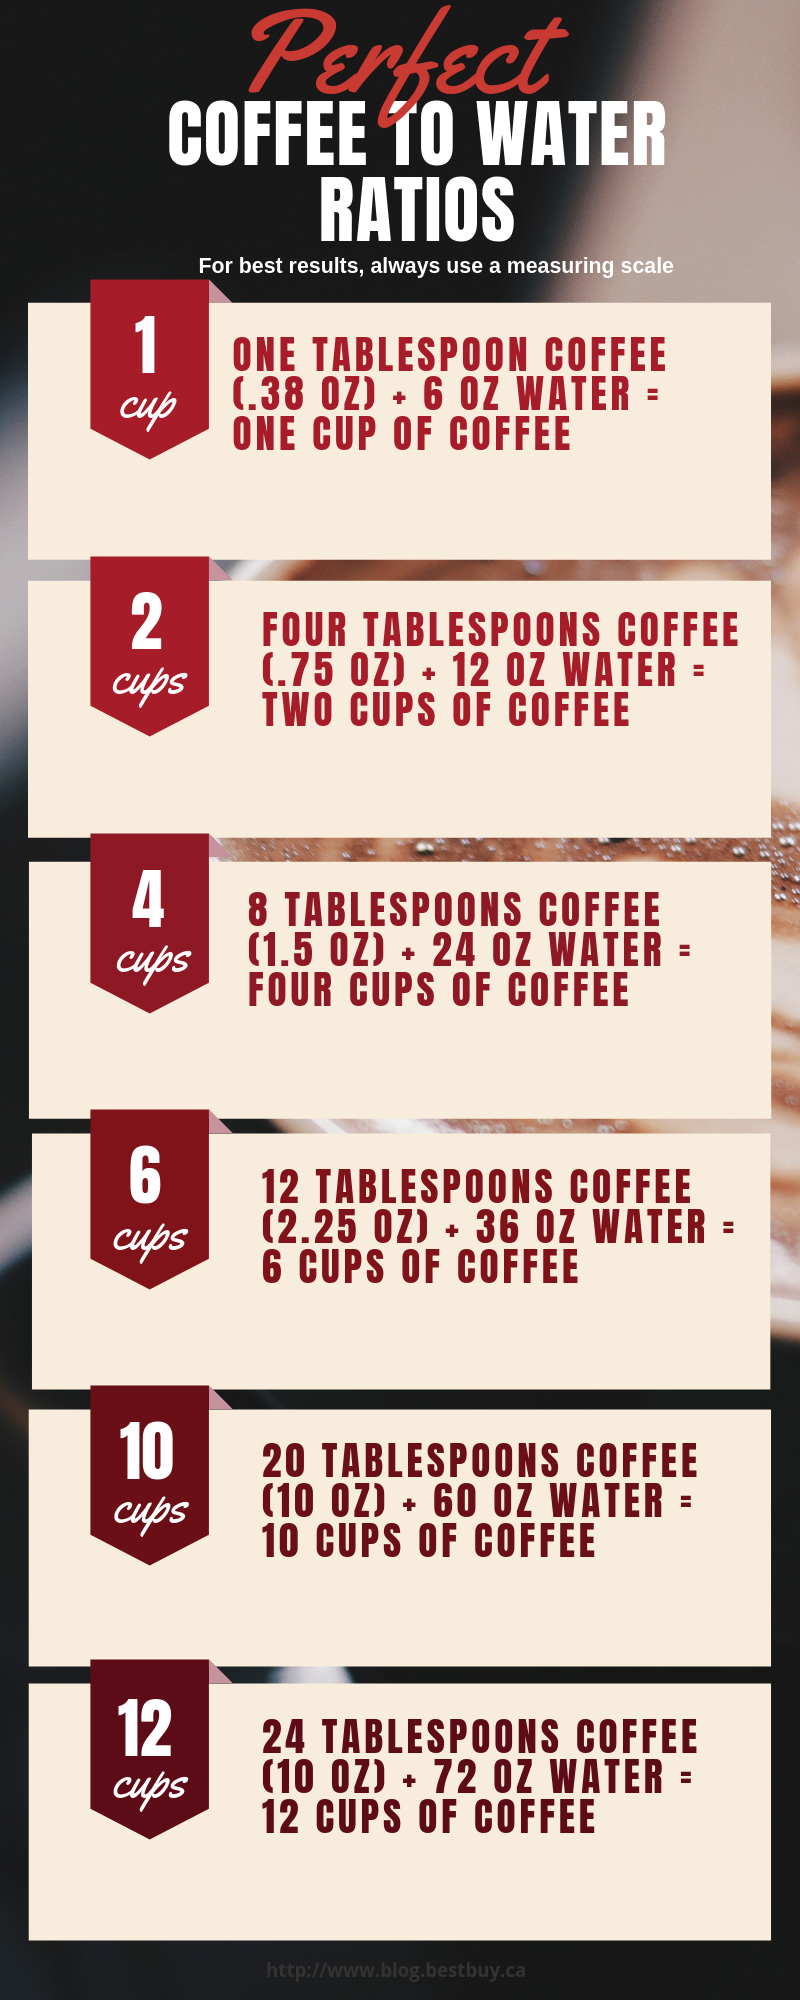 Coffee to water Ratios how to make the perfect cup of coffee